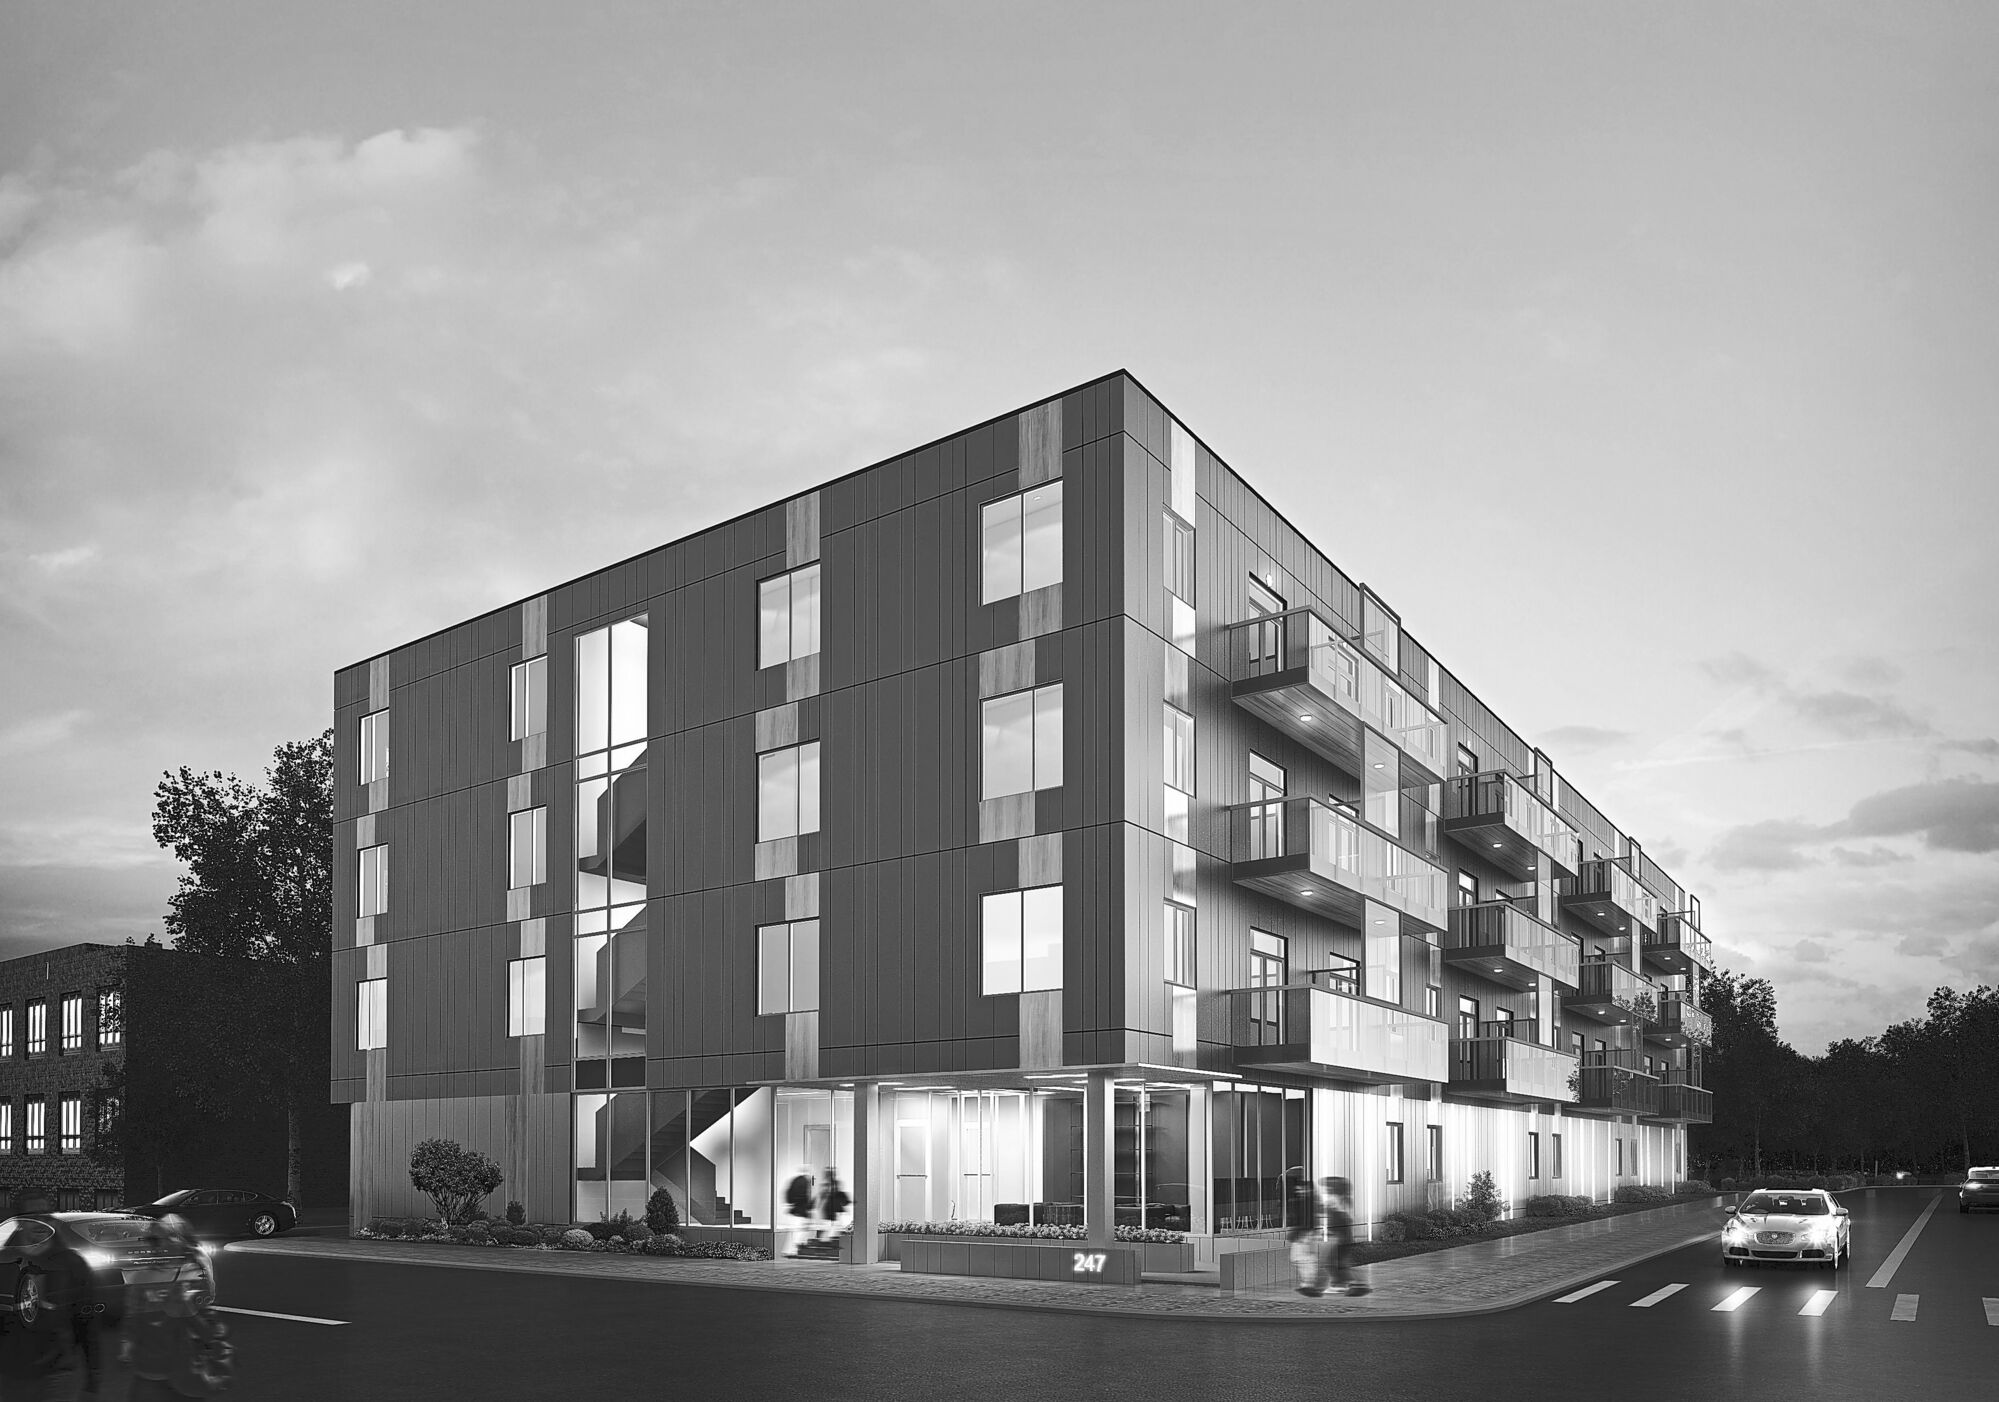 Construction of the proposed 48-unit condo complex at 247 River Ave. is slated to begin this summer.